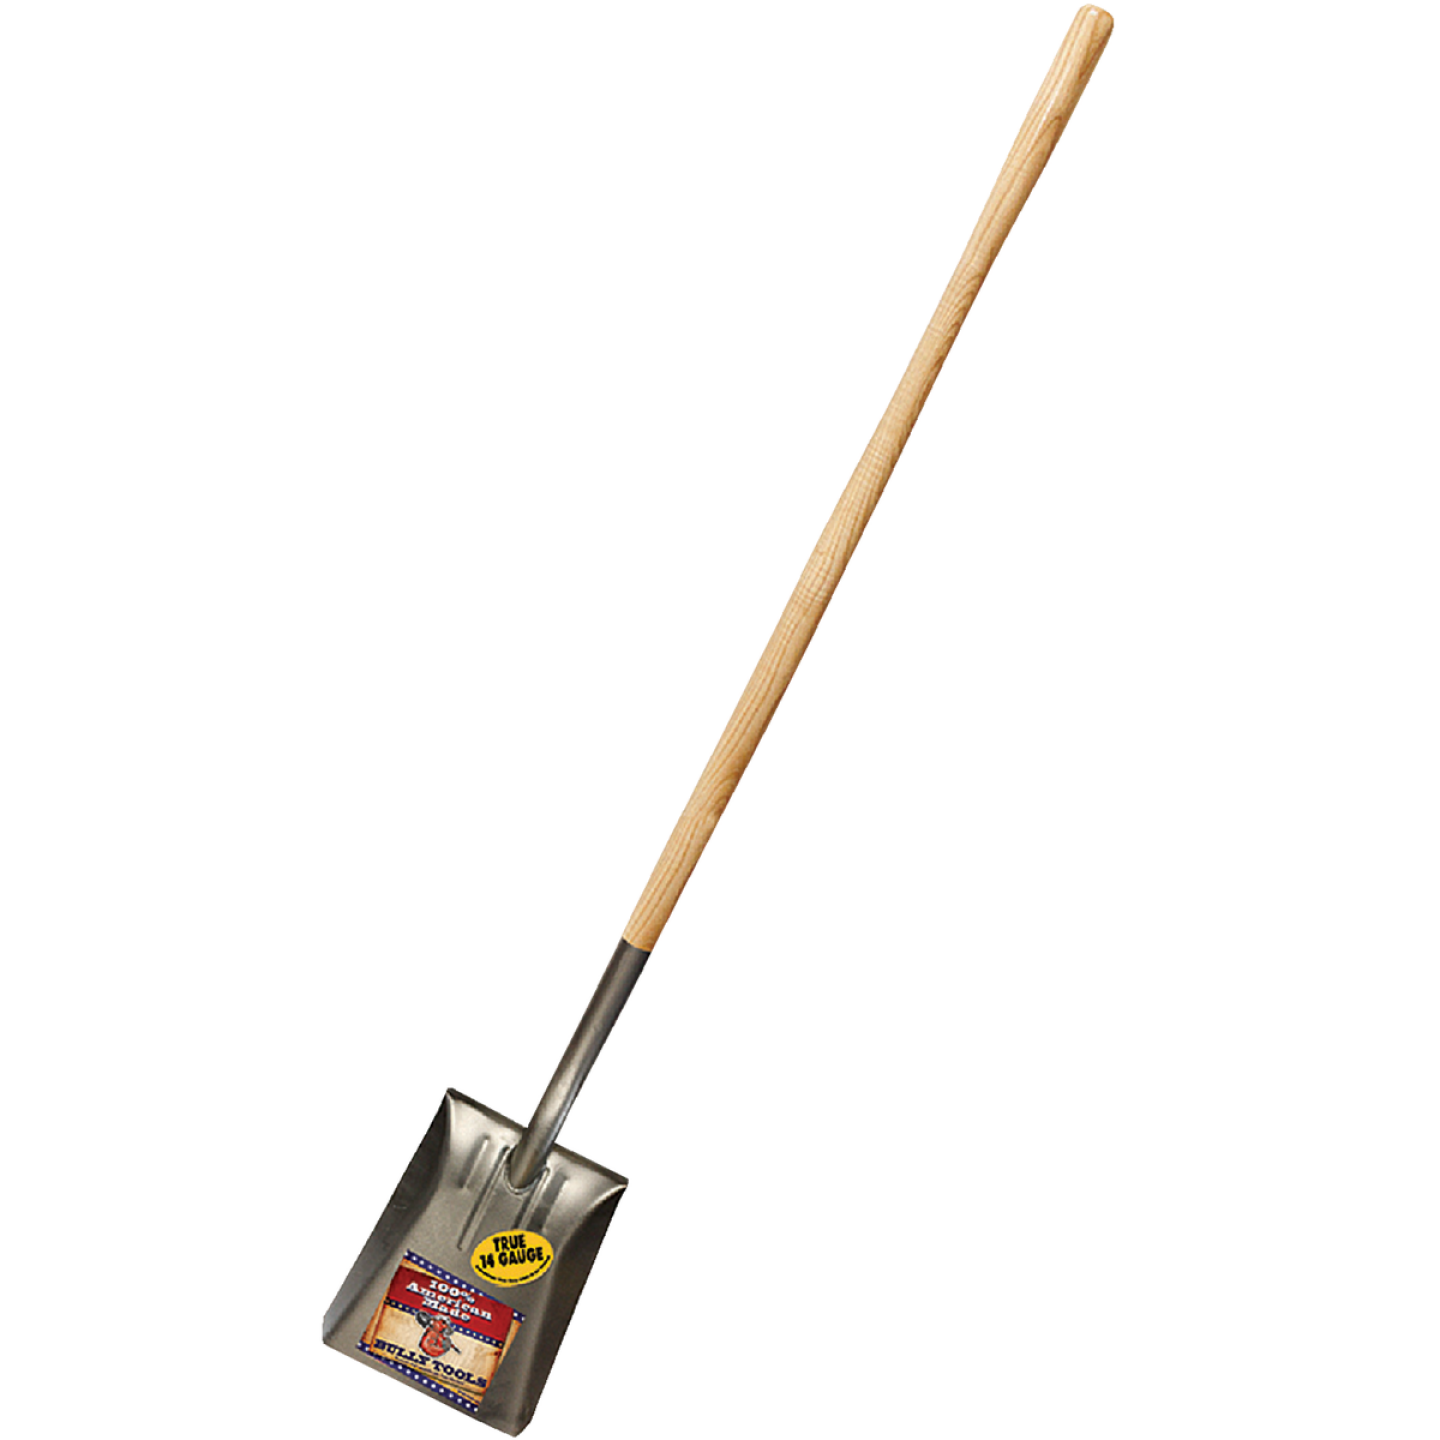 Bully Tools 46 In. Wood Handle Square Point Shovel Image 1